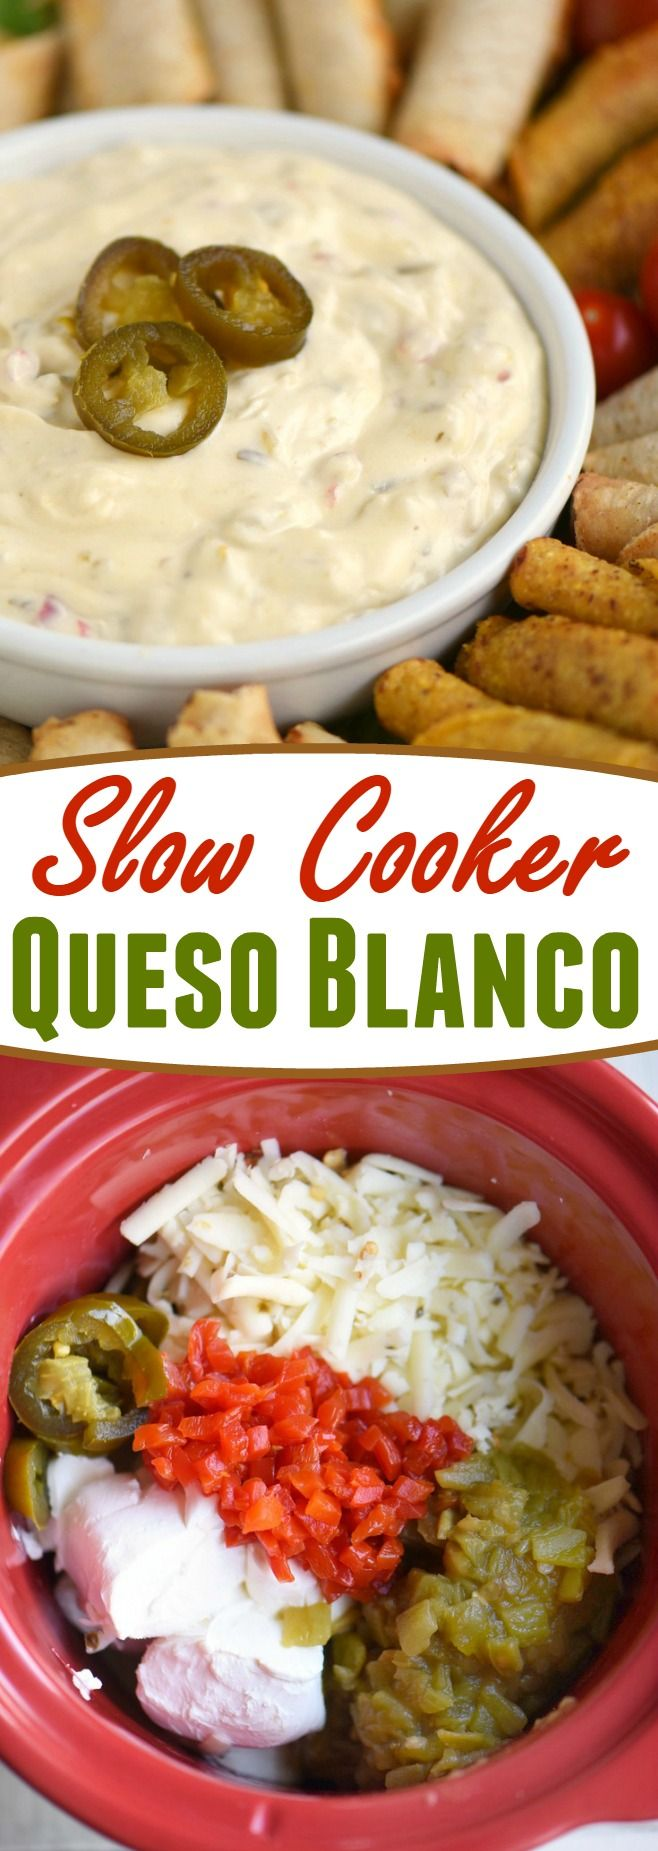 Spicy, cheesy, and totally delicious, this easy Slow Cooker Queso Blanco is what you want to be serving at your next party! Just a handful of ingredients and you're on your way to your new favorite dip!: